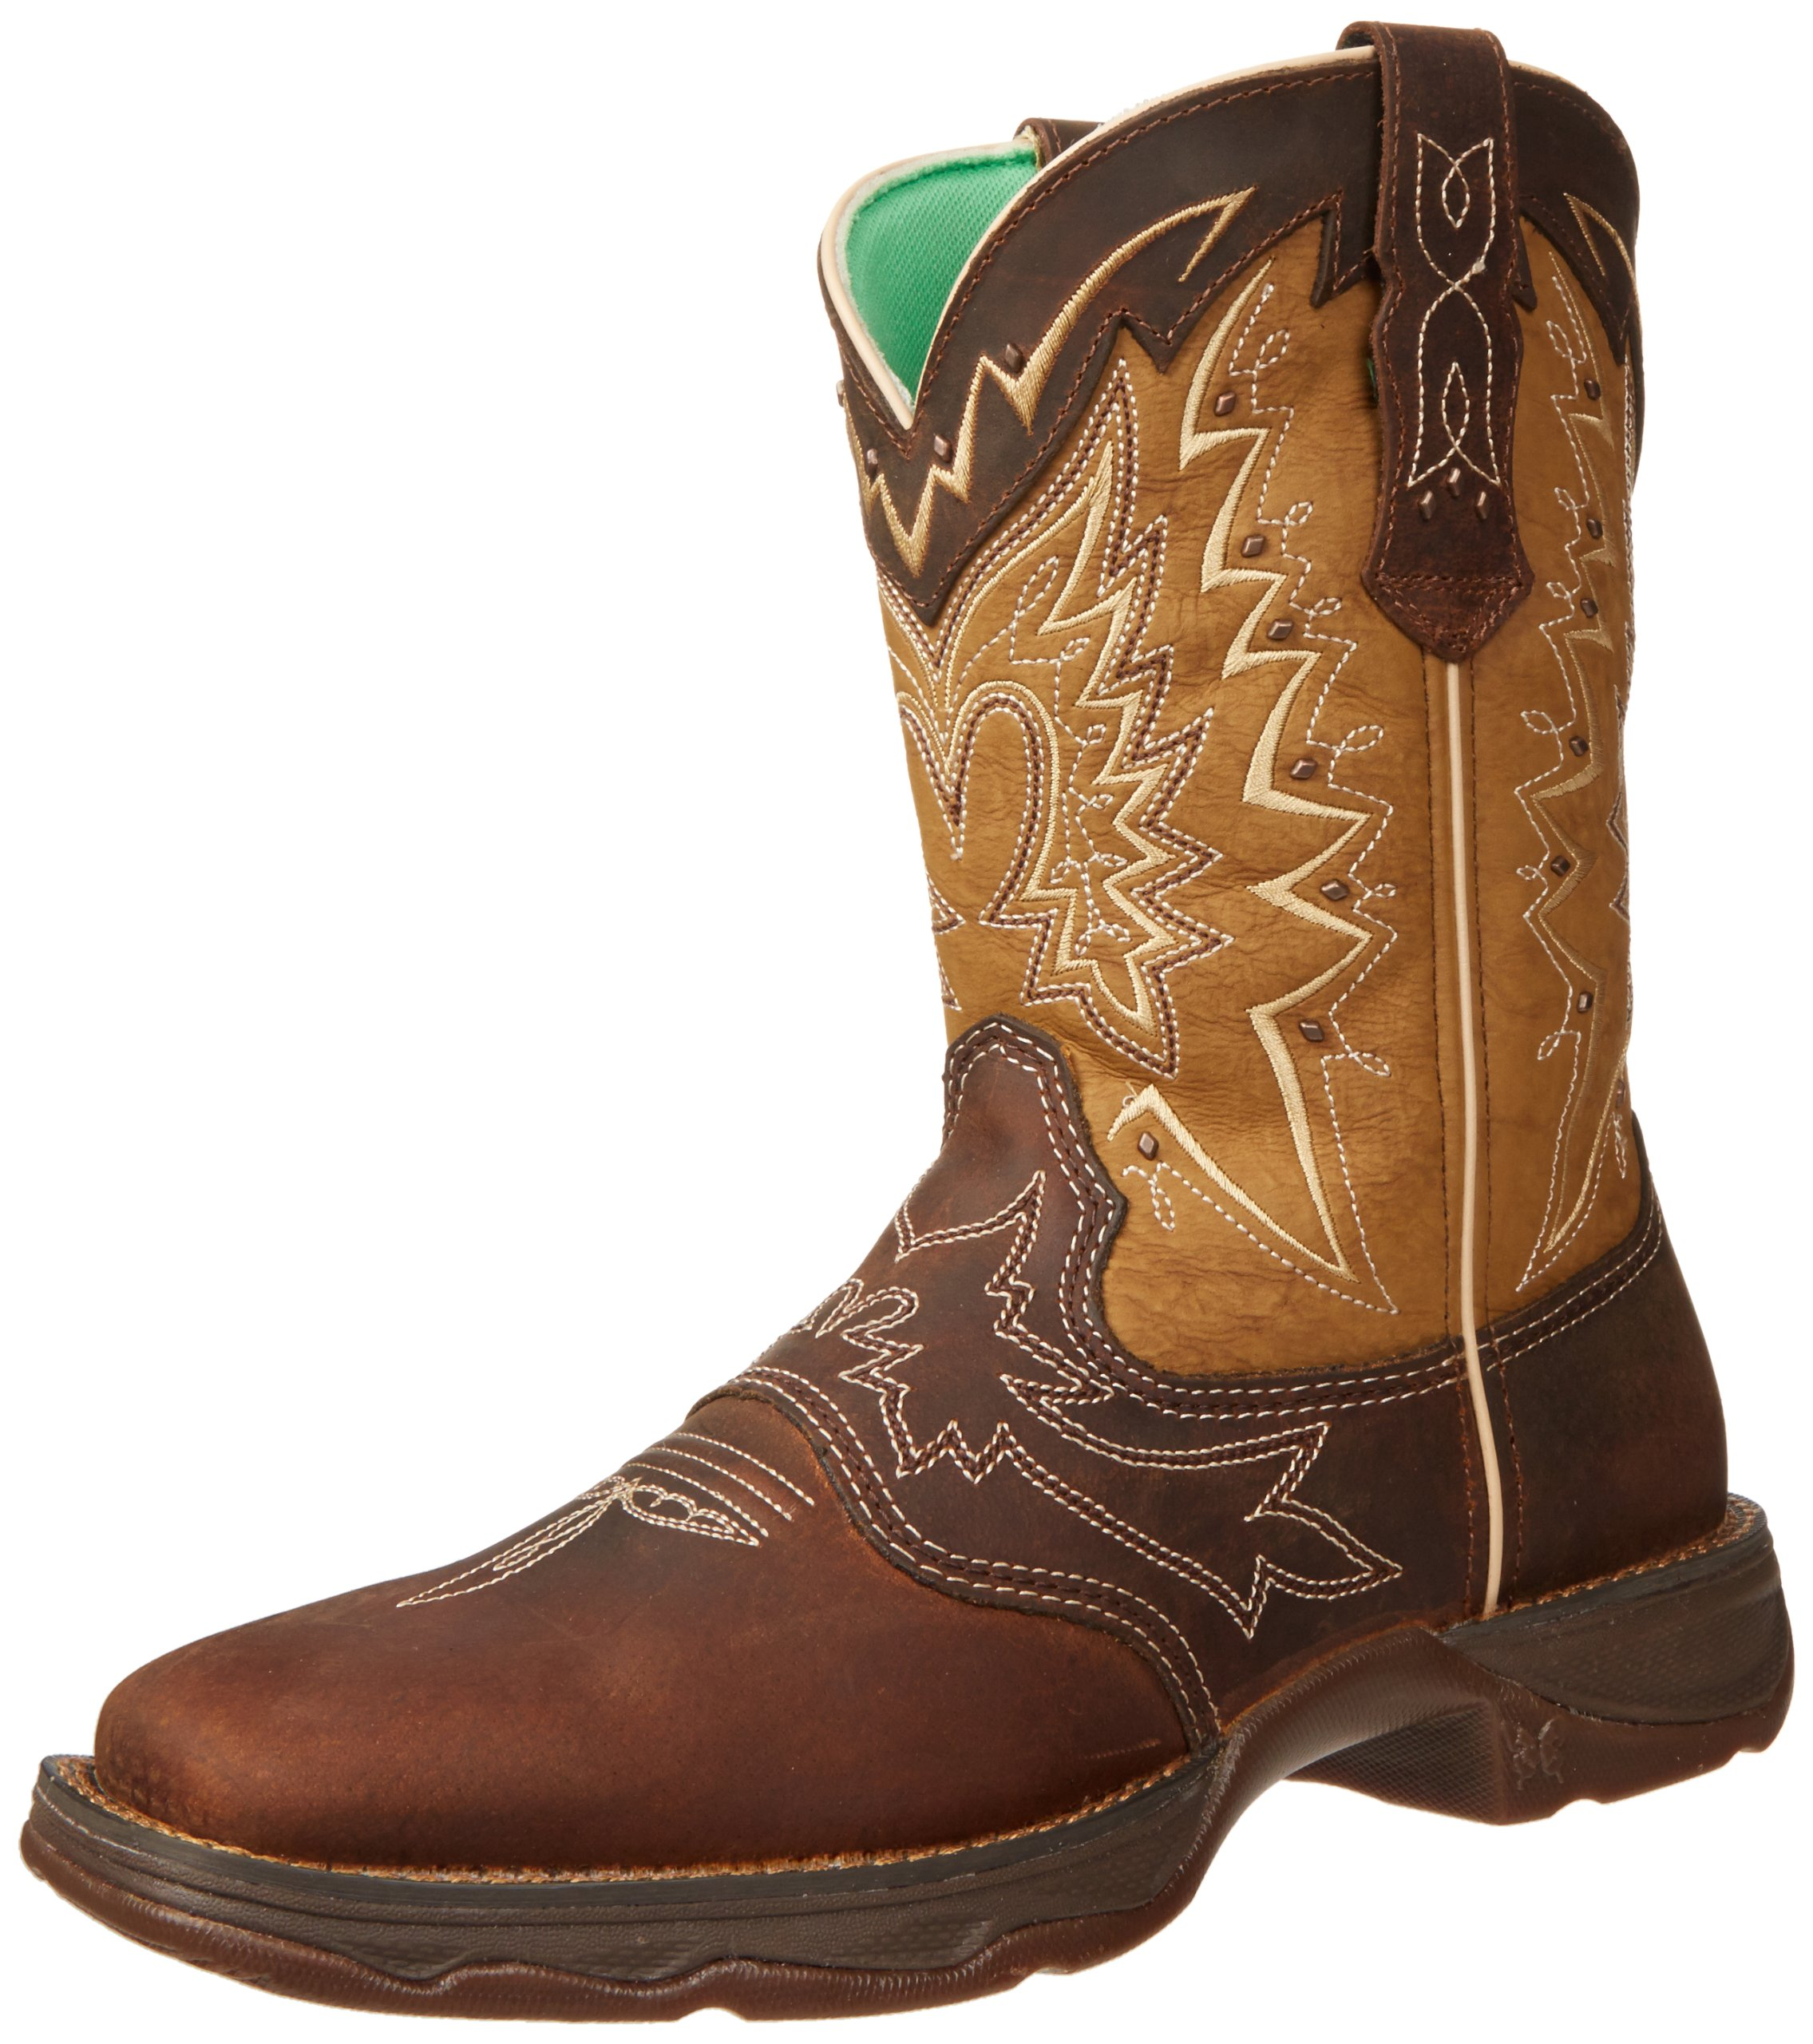 Durango Women's RD4424 Boot,Nicotine/Brown,10 M US